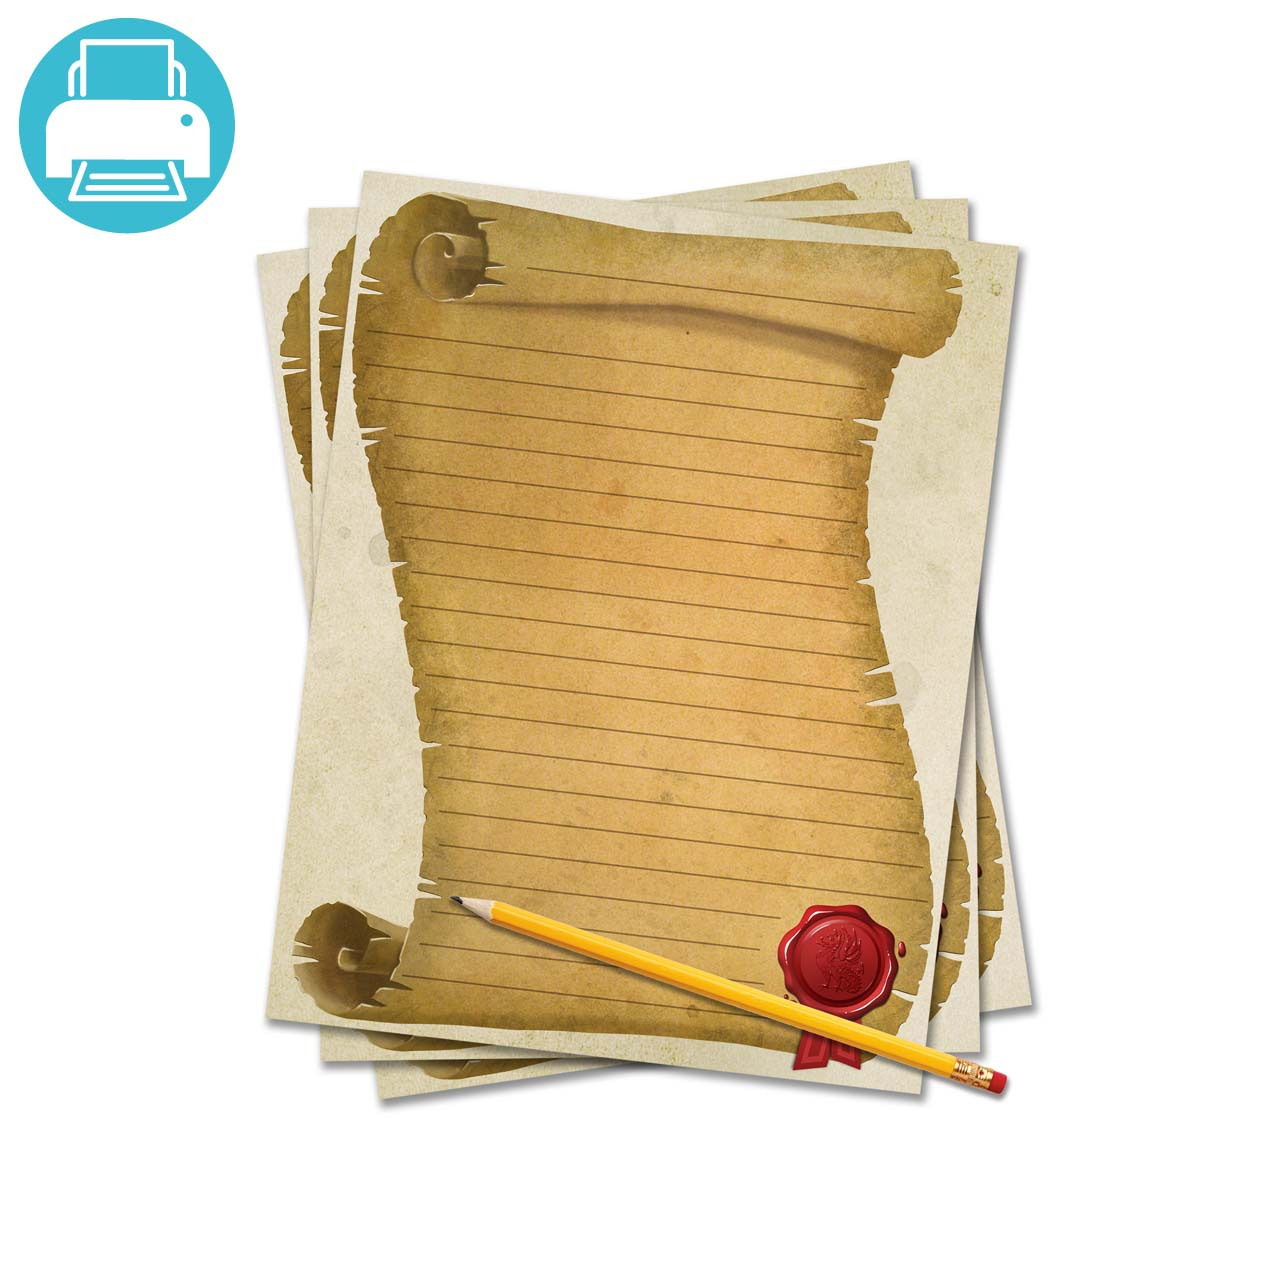 Scroll writing paper